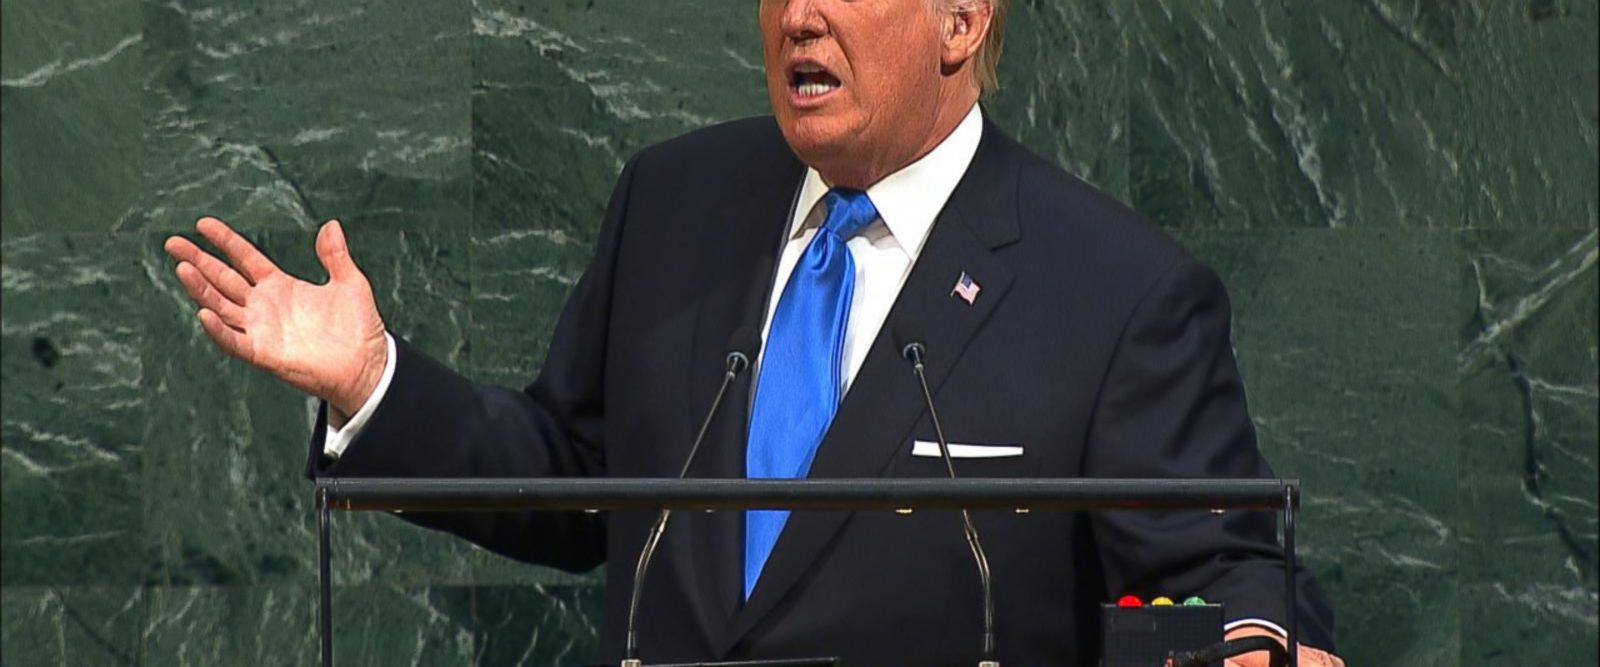 VIDEO: Trump delivers blistering address to UN General Assembly